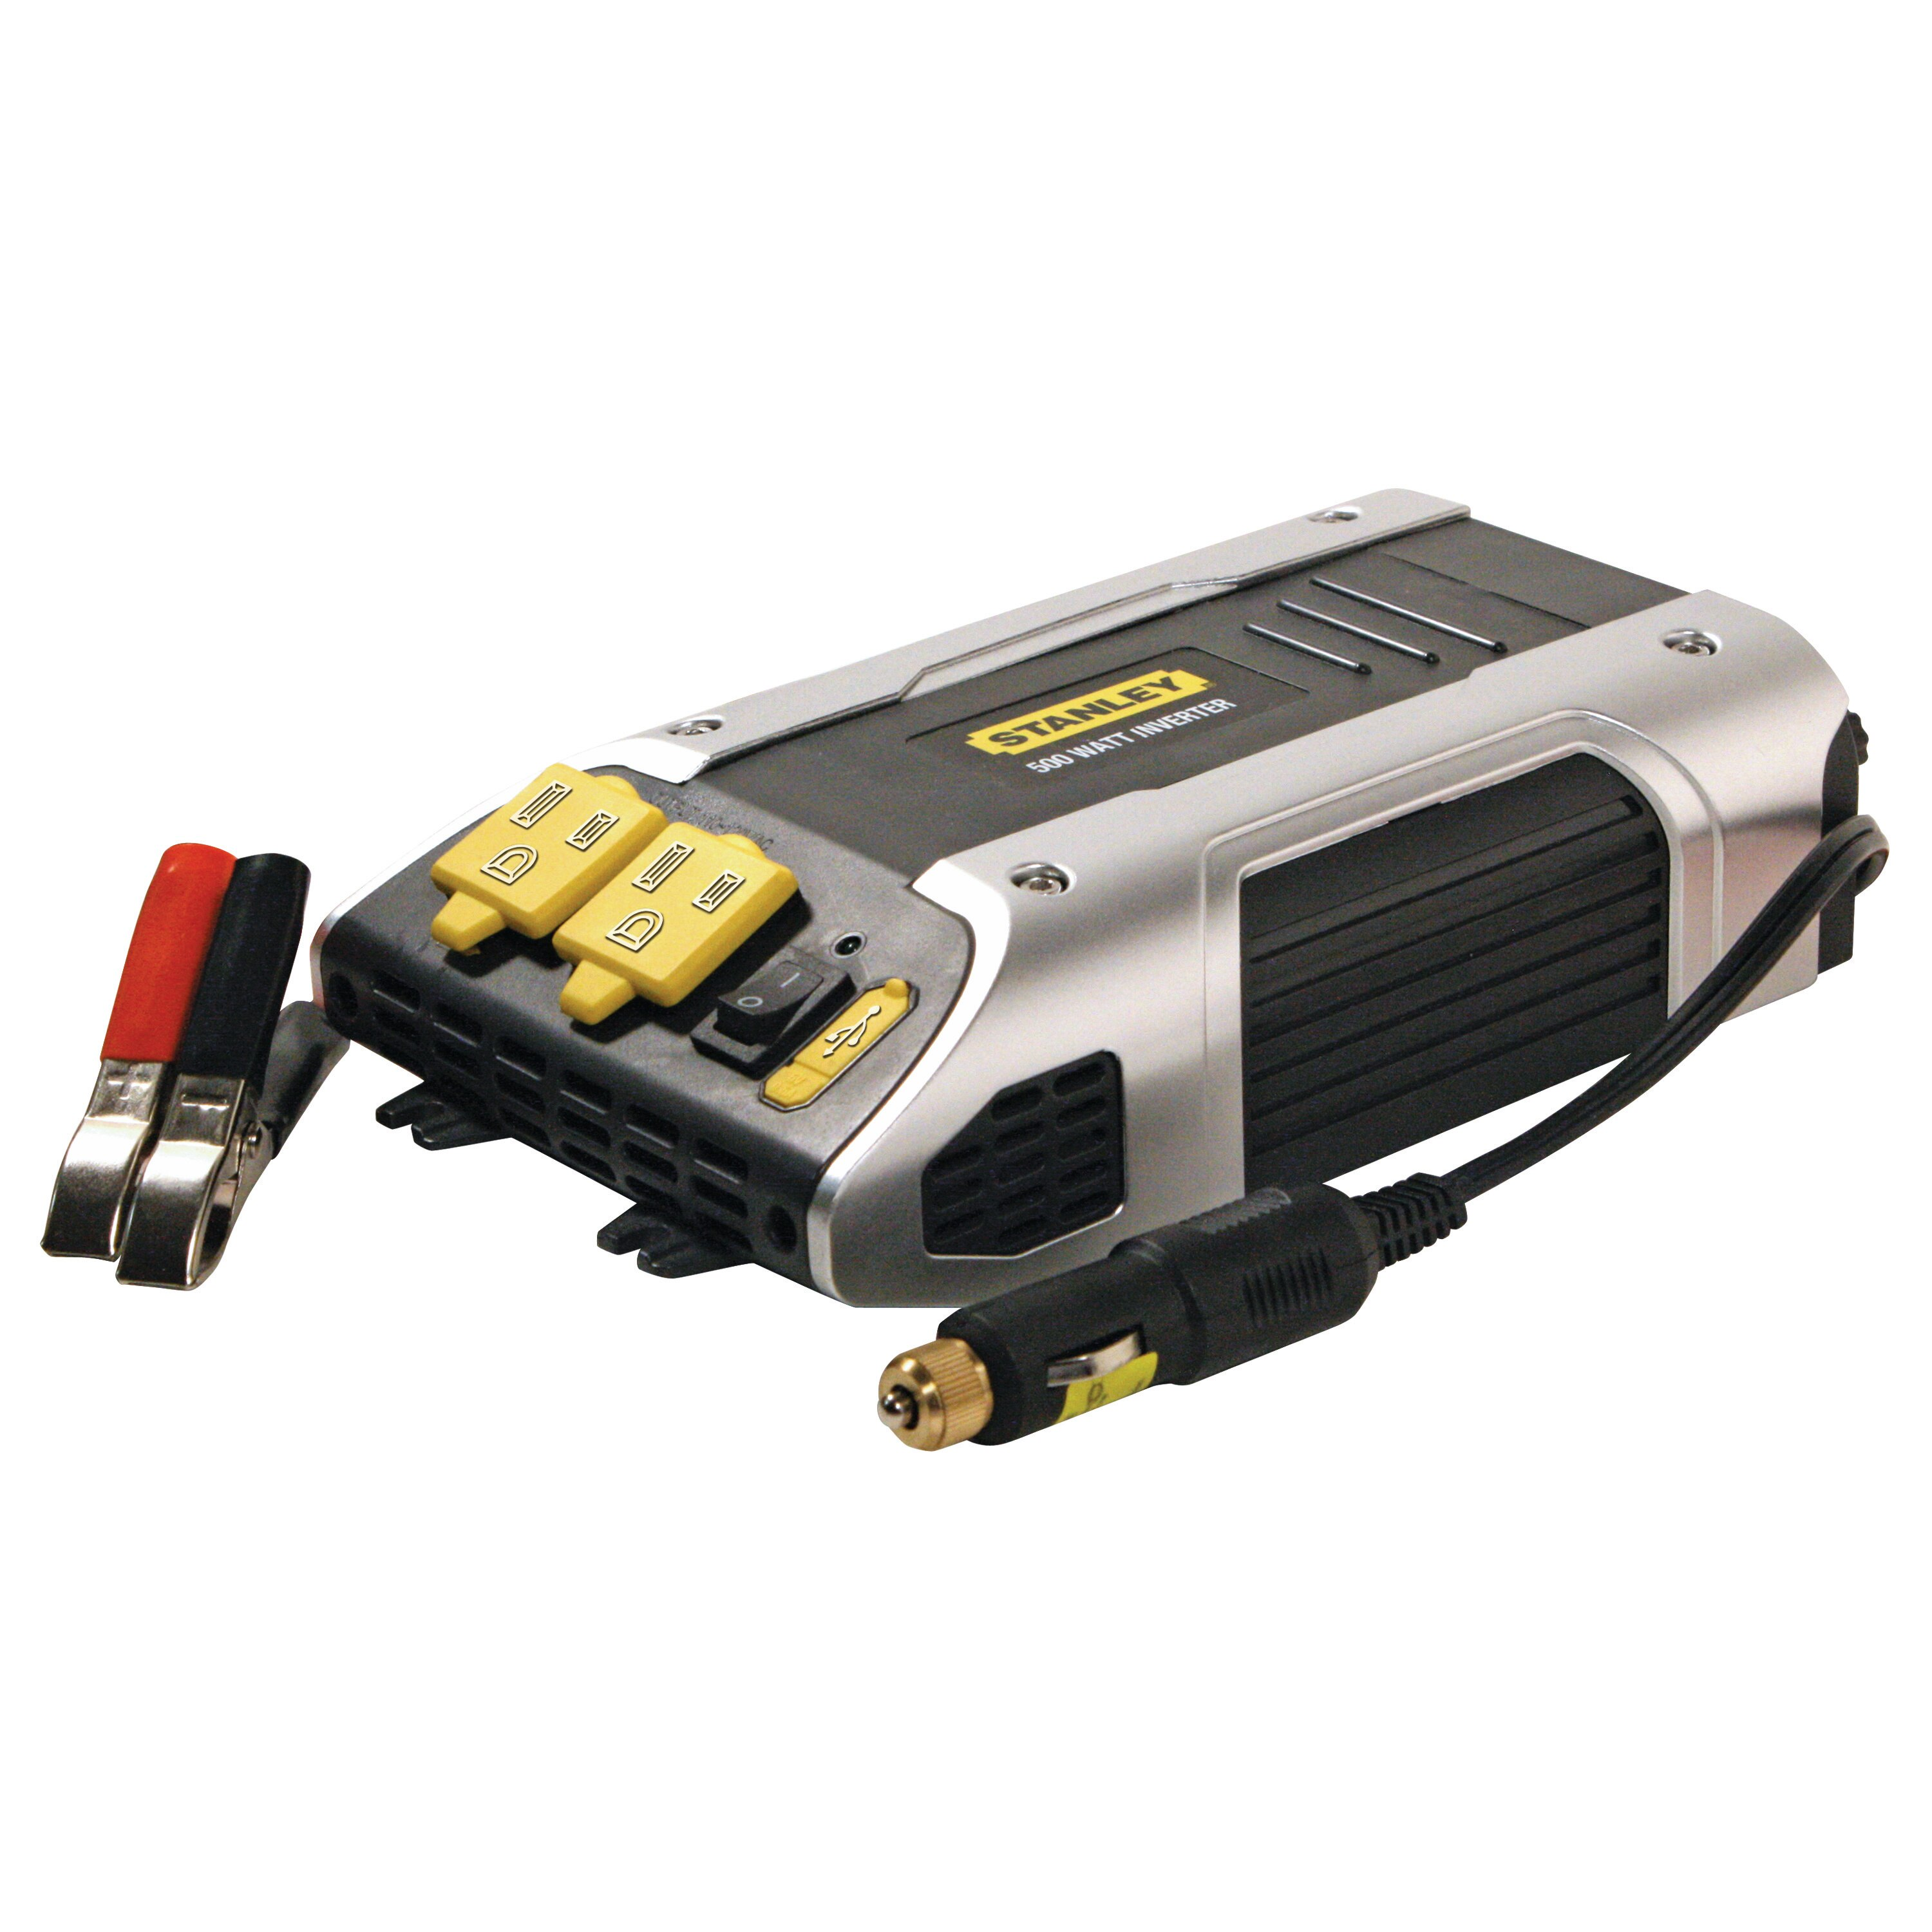 Stanley Tools - 500 Watt Power Inverter with DC Plug - PC509